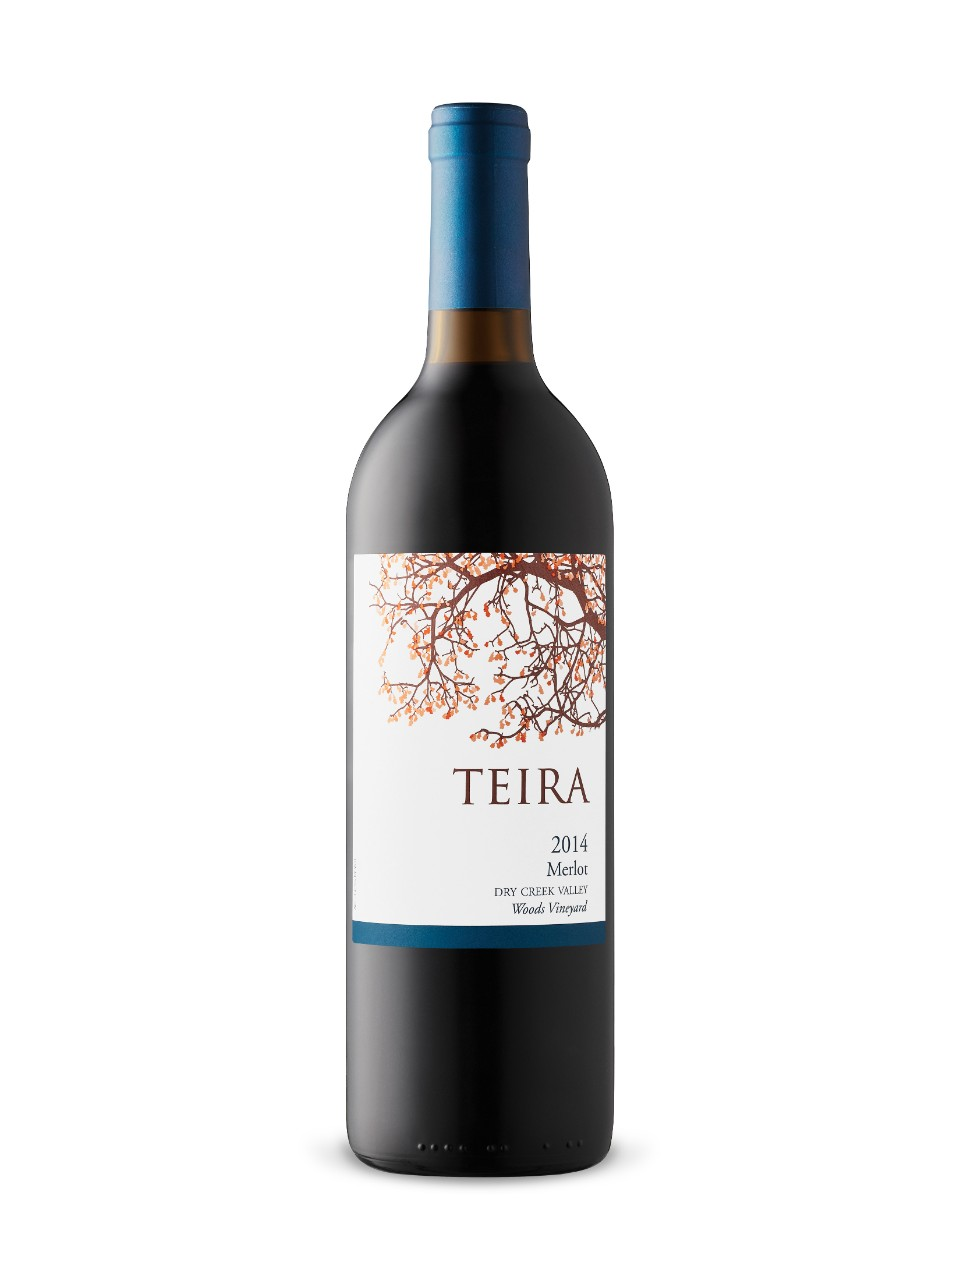 Teira Dry Creek Valley Merlot 2014 from LCBO